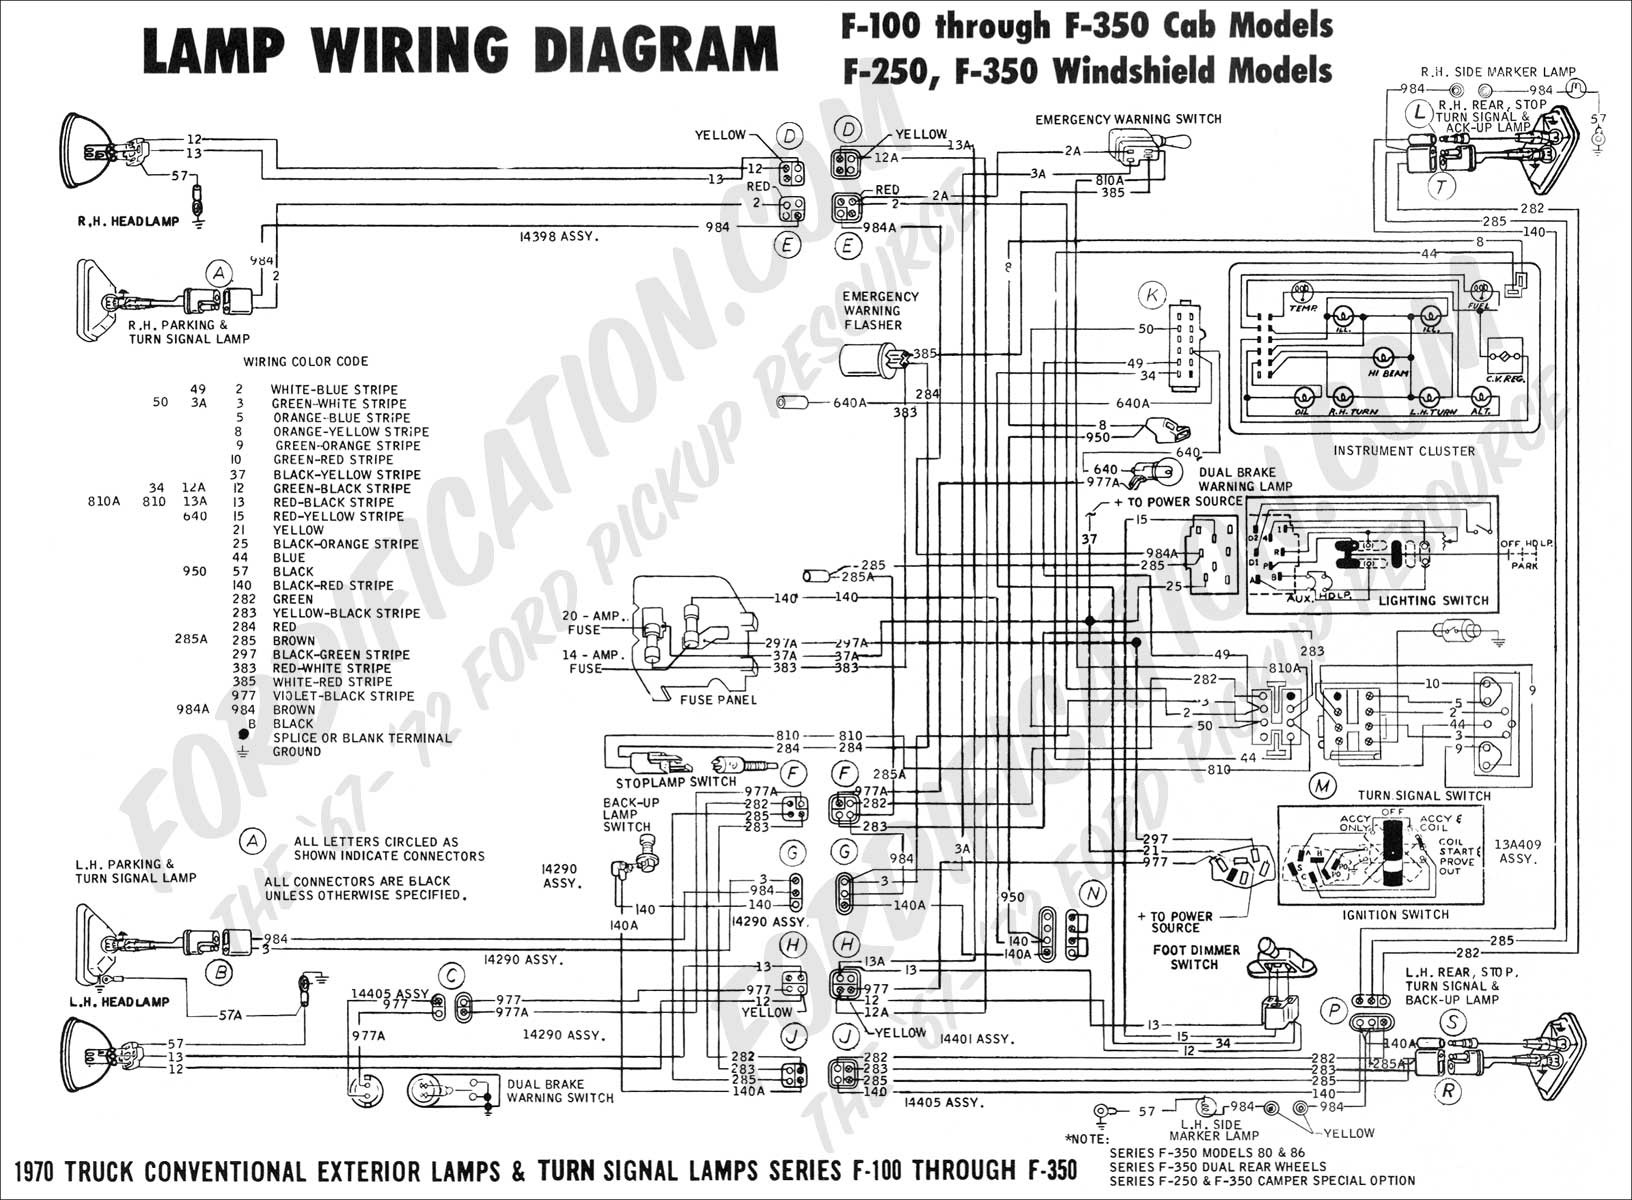 hight resolution of 2003 ford mustang engine diagram ford f 250 diagram wiring diagram of 2003 ford mustang engine